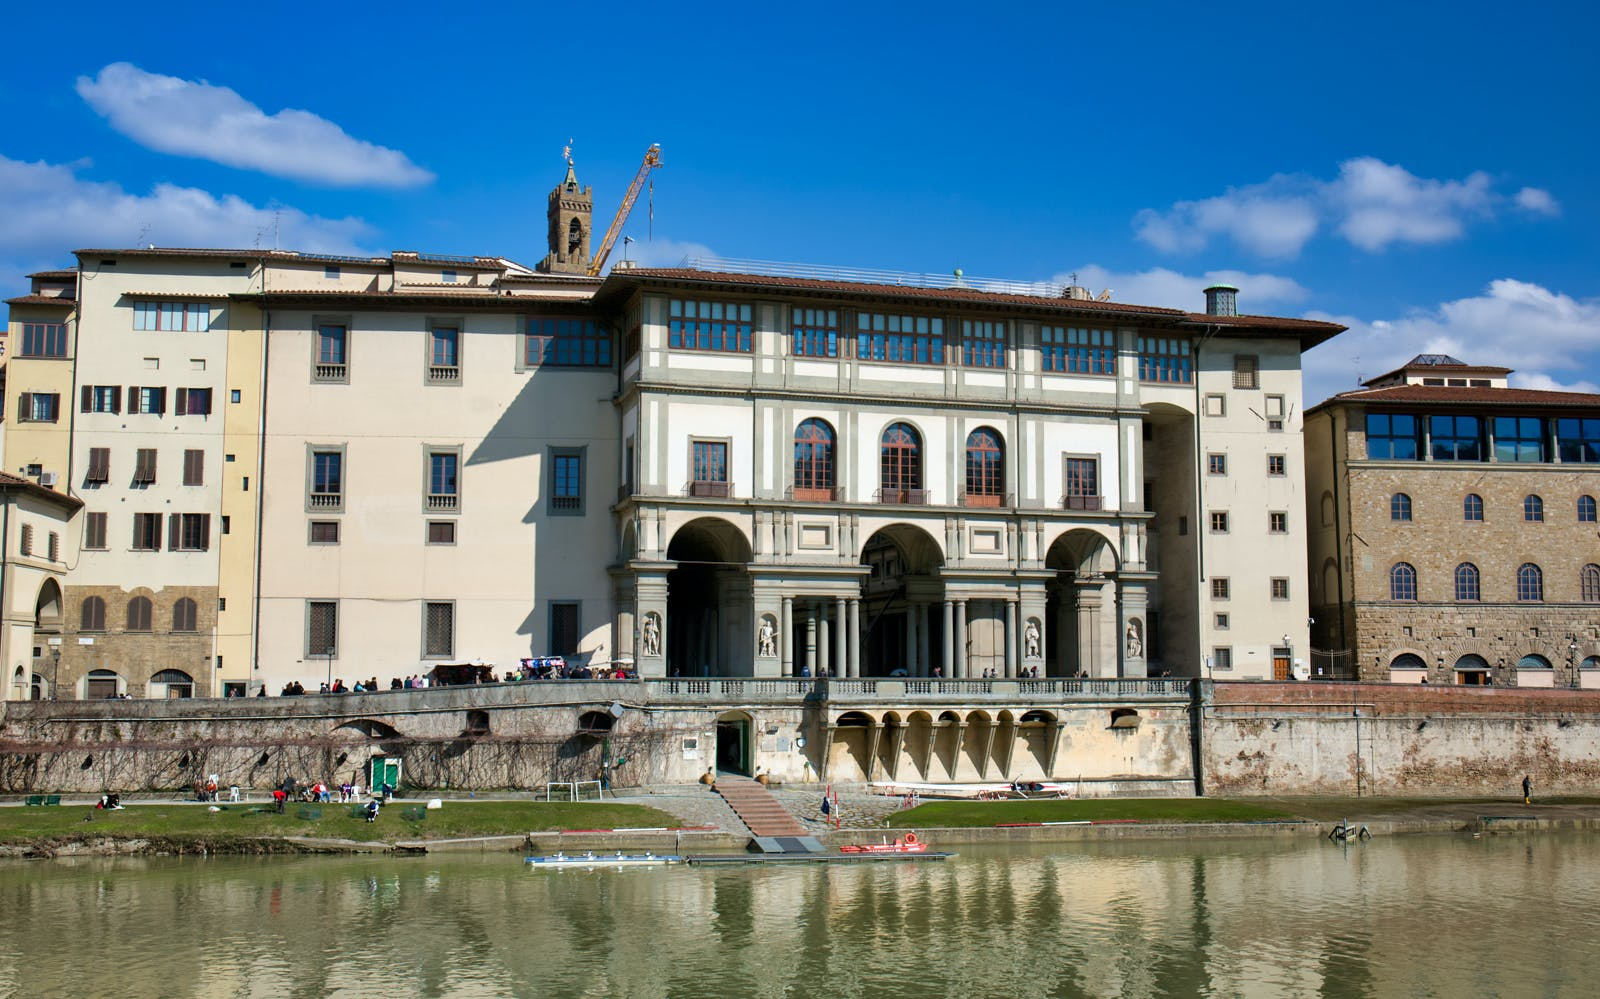 skip the line to uffizi & accademia galleries + florence city tour-4